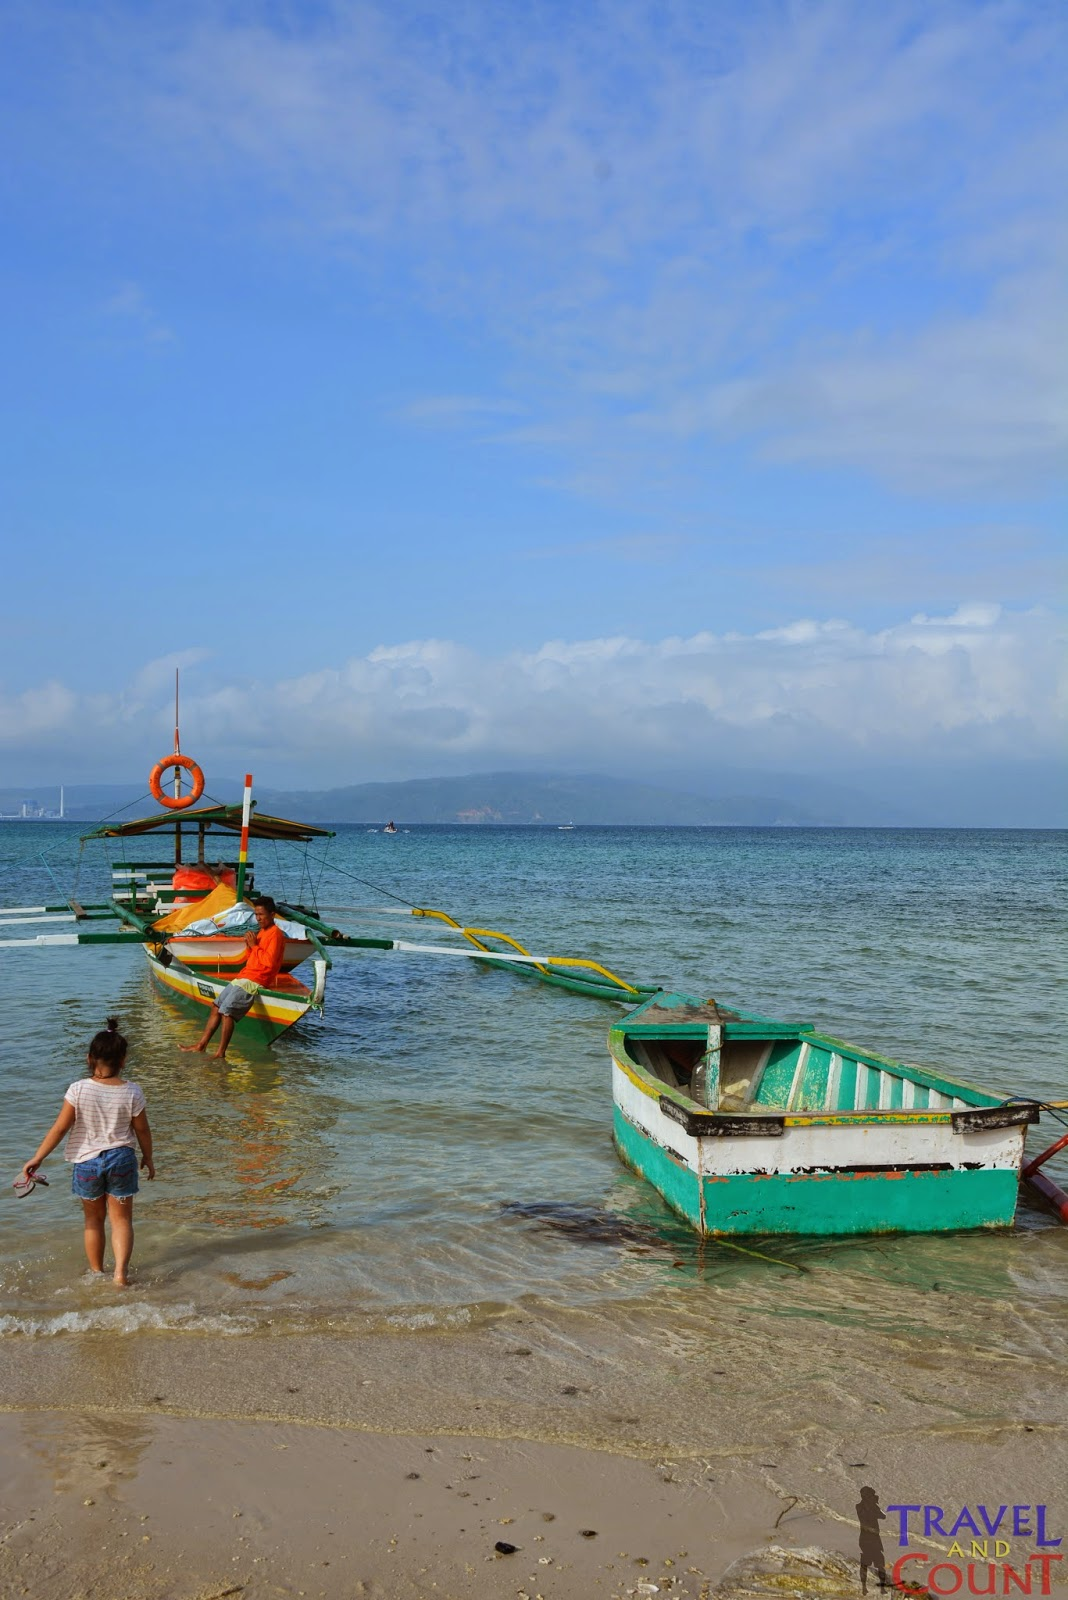 Mini-boat in Sabang Port, Cagbalete Island